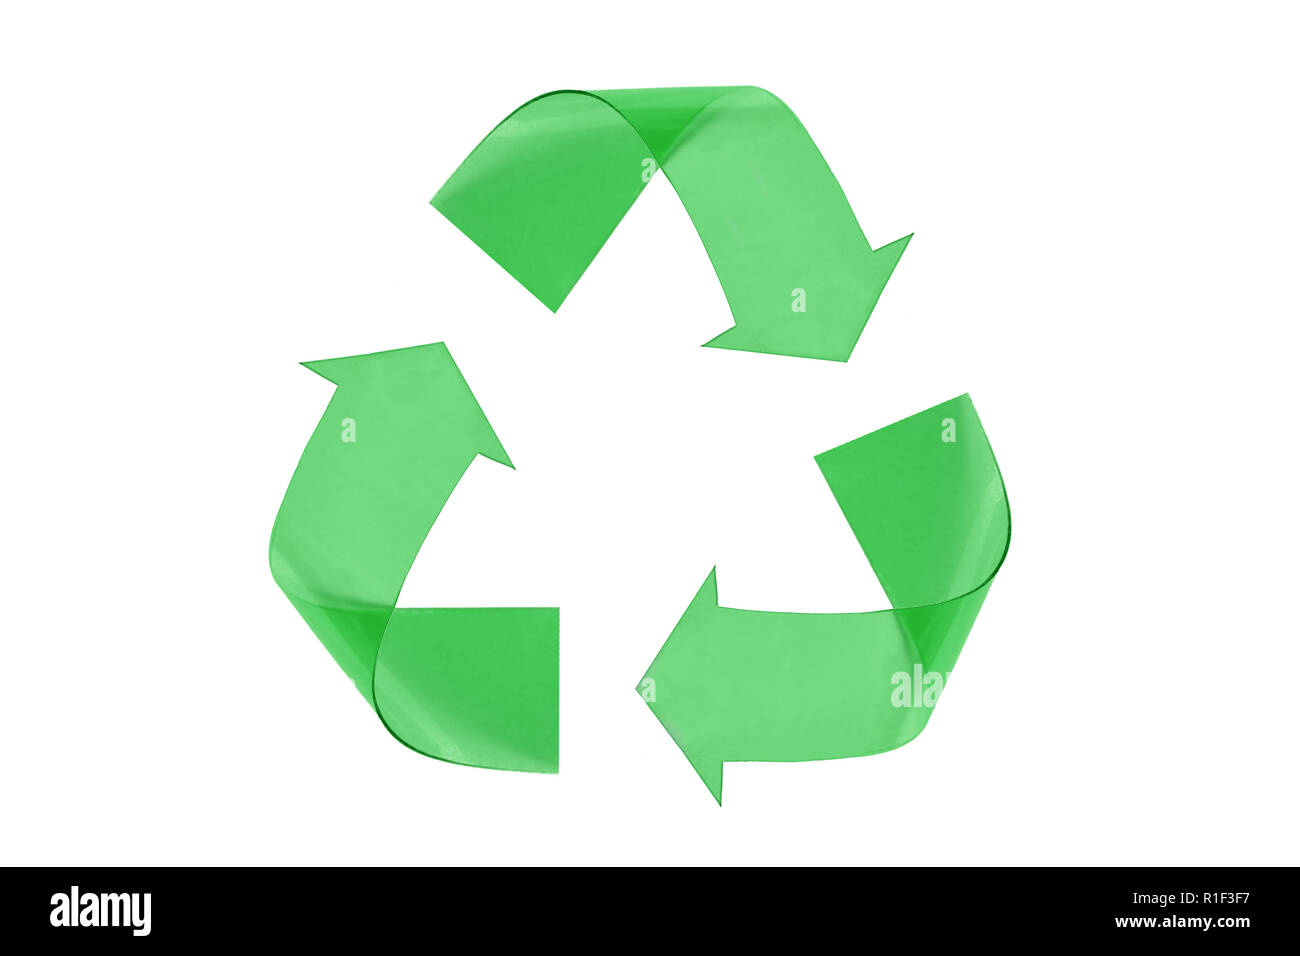 Recyclig symbol made of green plastic on white background - Stock Image